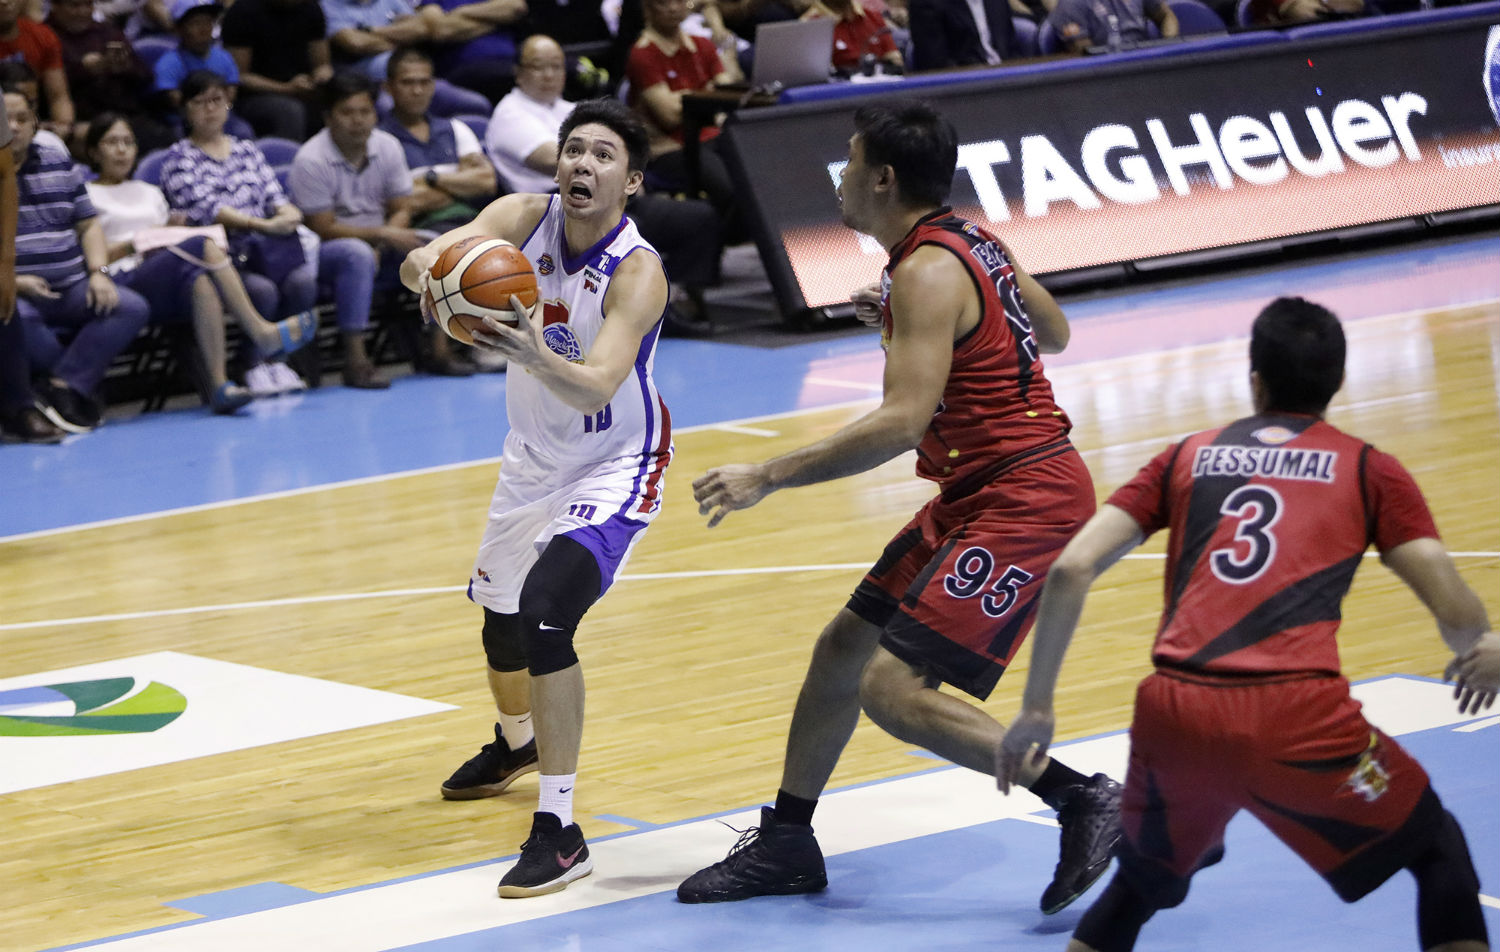 STAR. Ian Sangalang shines the brightest as the Magnolia Hotshots stun the San Miguel Beermen in Game 1 of the Philippine Cup finals. Photo by PBA Images